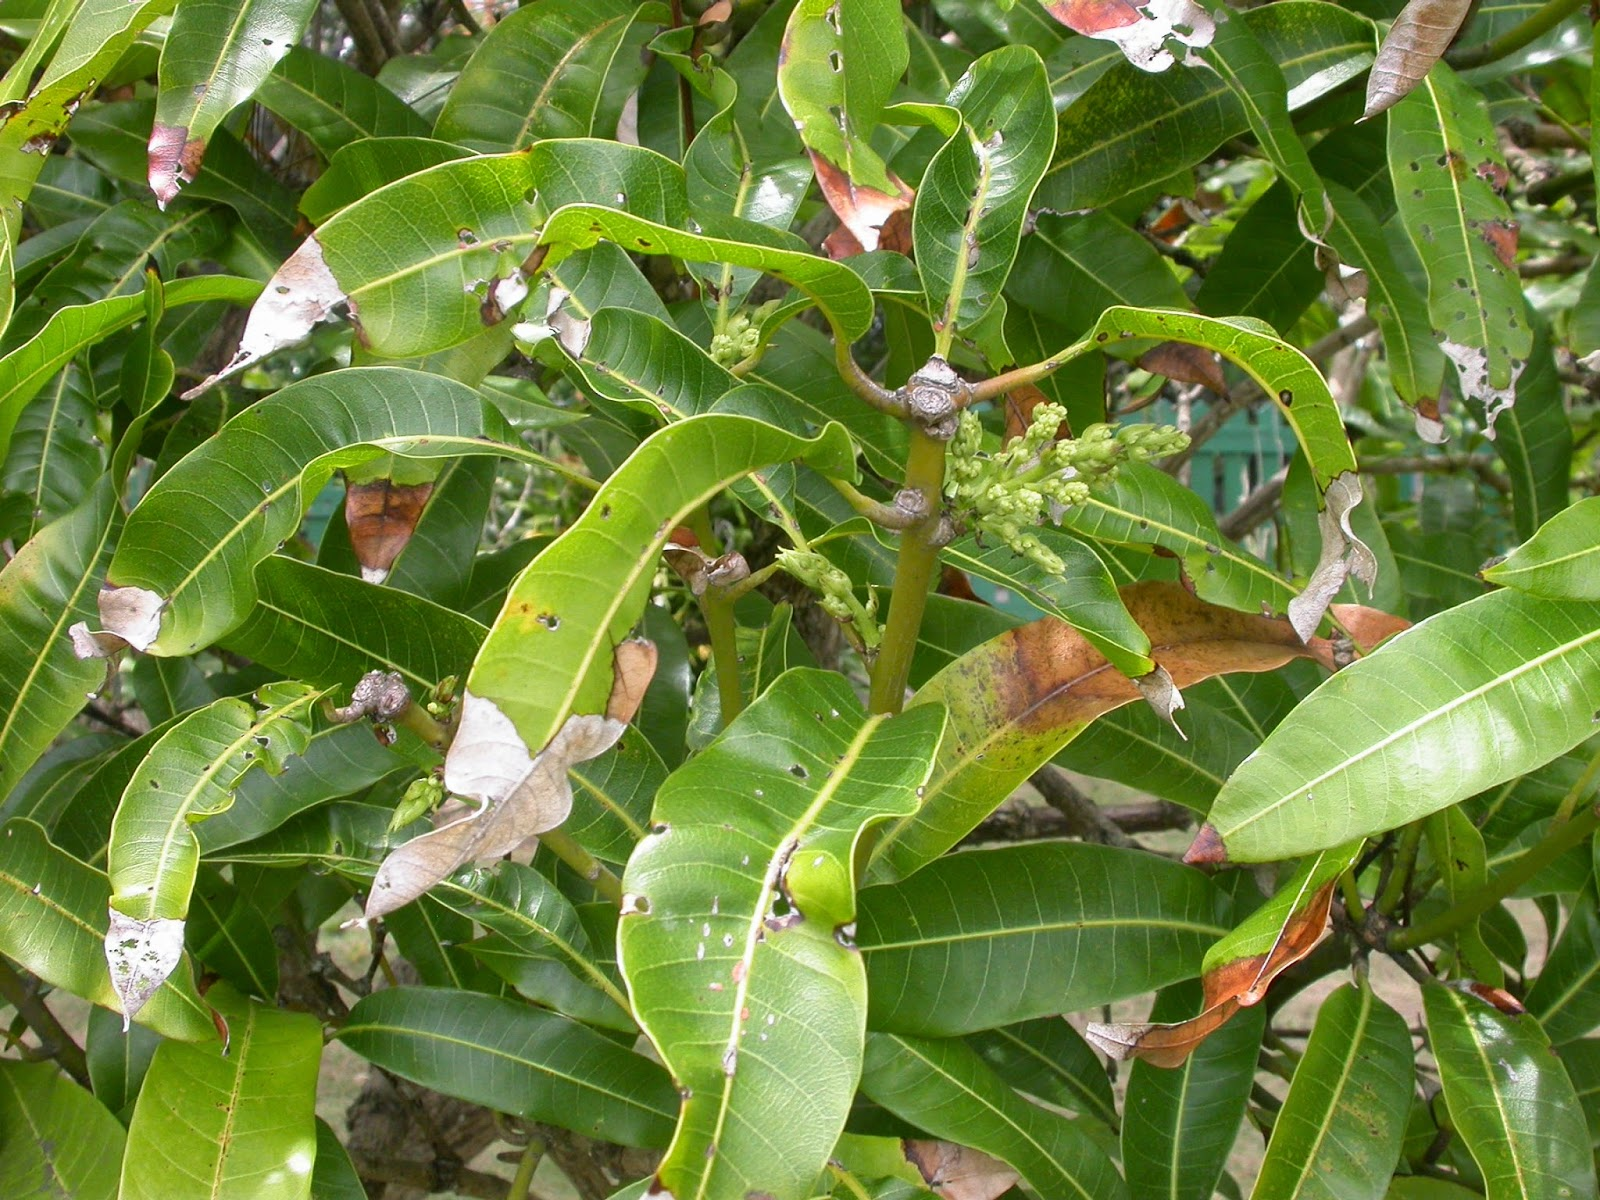 Awesome Mango Tree Not Producing Fruit Part - 14: But Itu0027s Not Only Avocados And Mangoes. Plum And Golden Apple Trees Are  Also Flowering Profusely, As Are Guava And Sugar Apple. Looks Like  Conditions Are ...